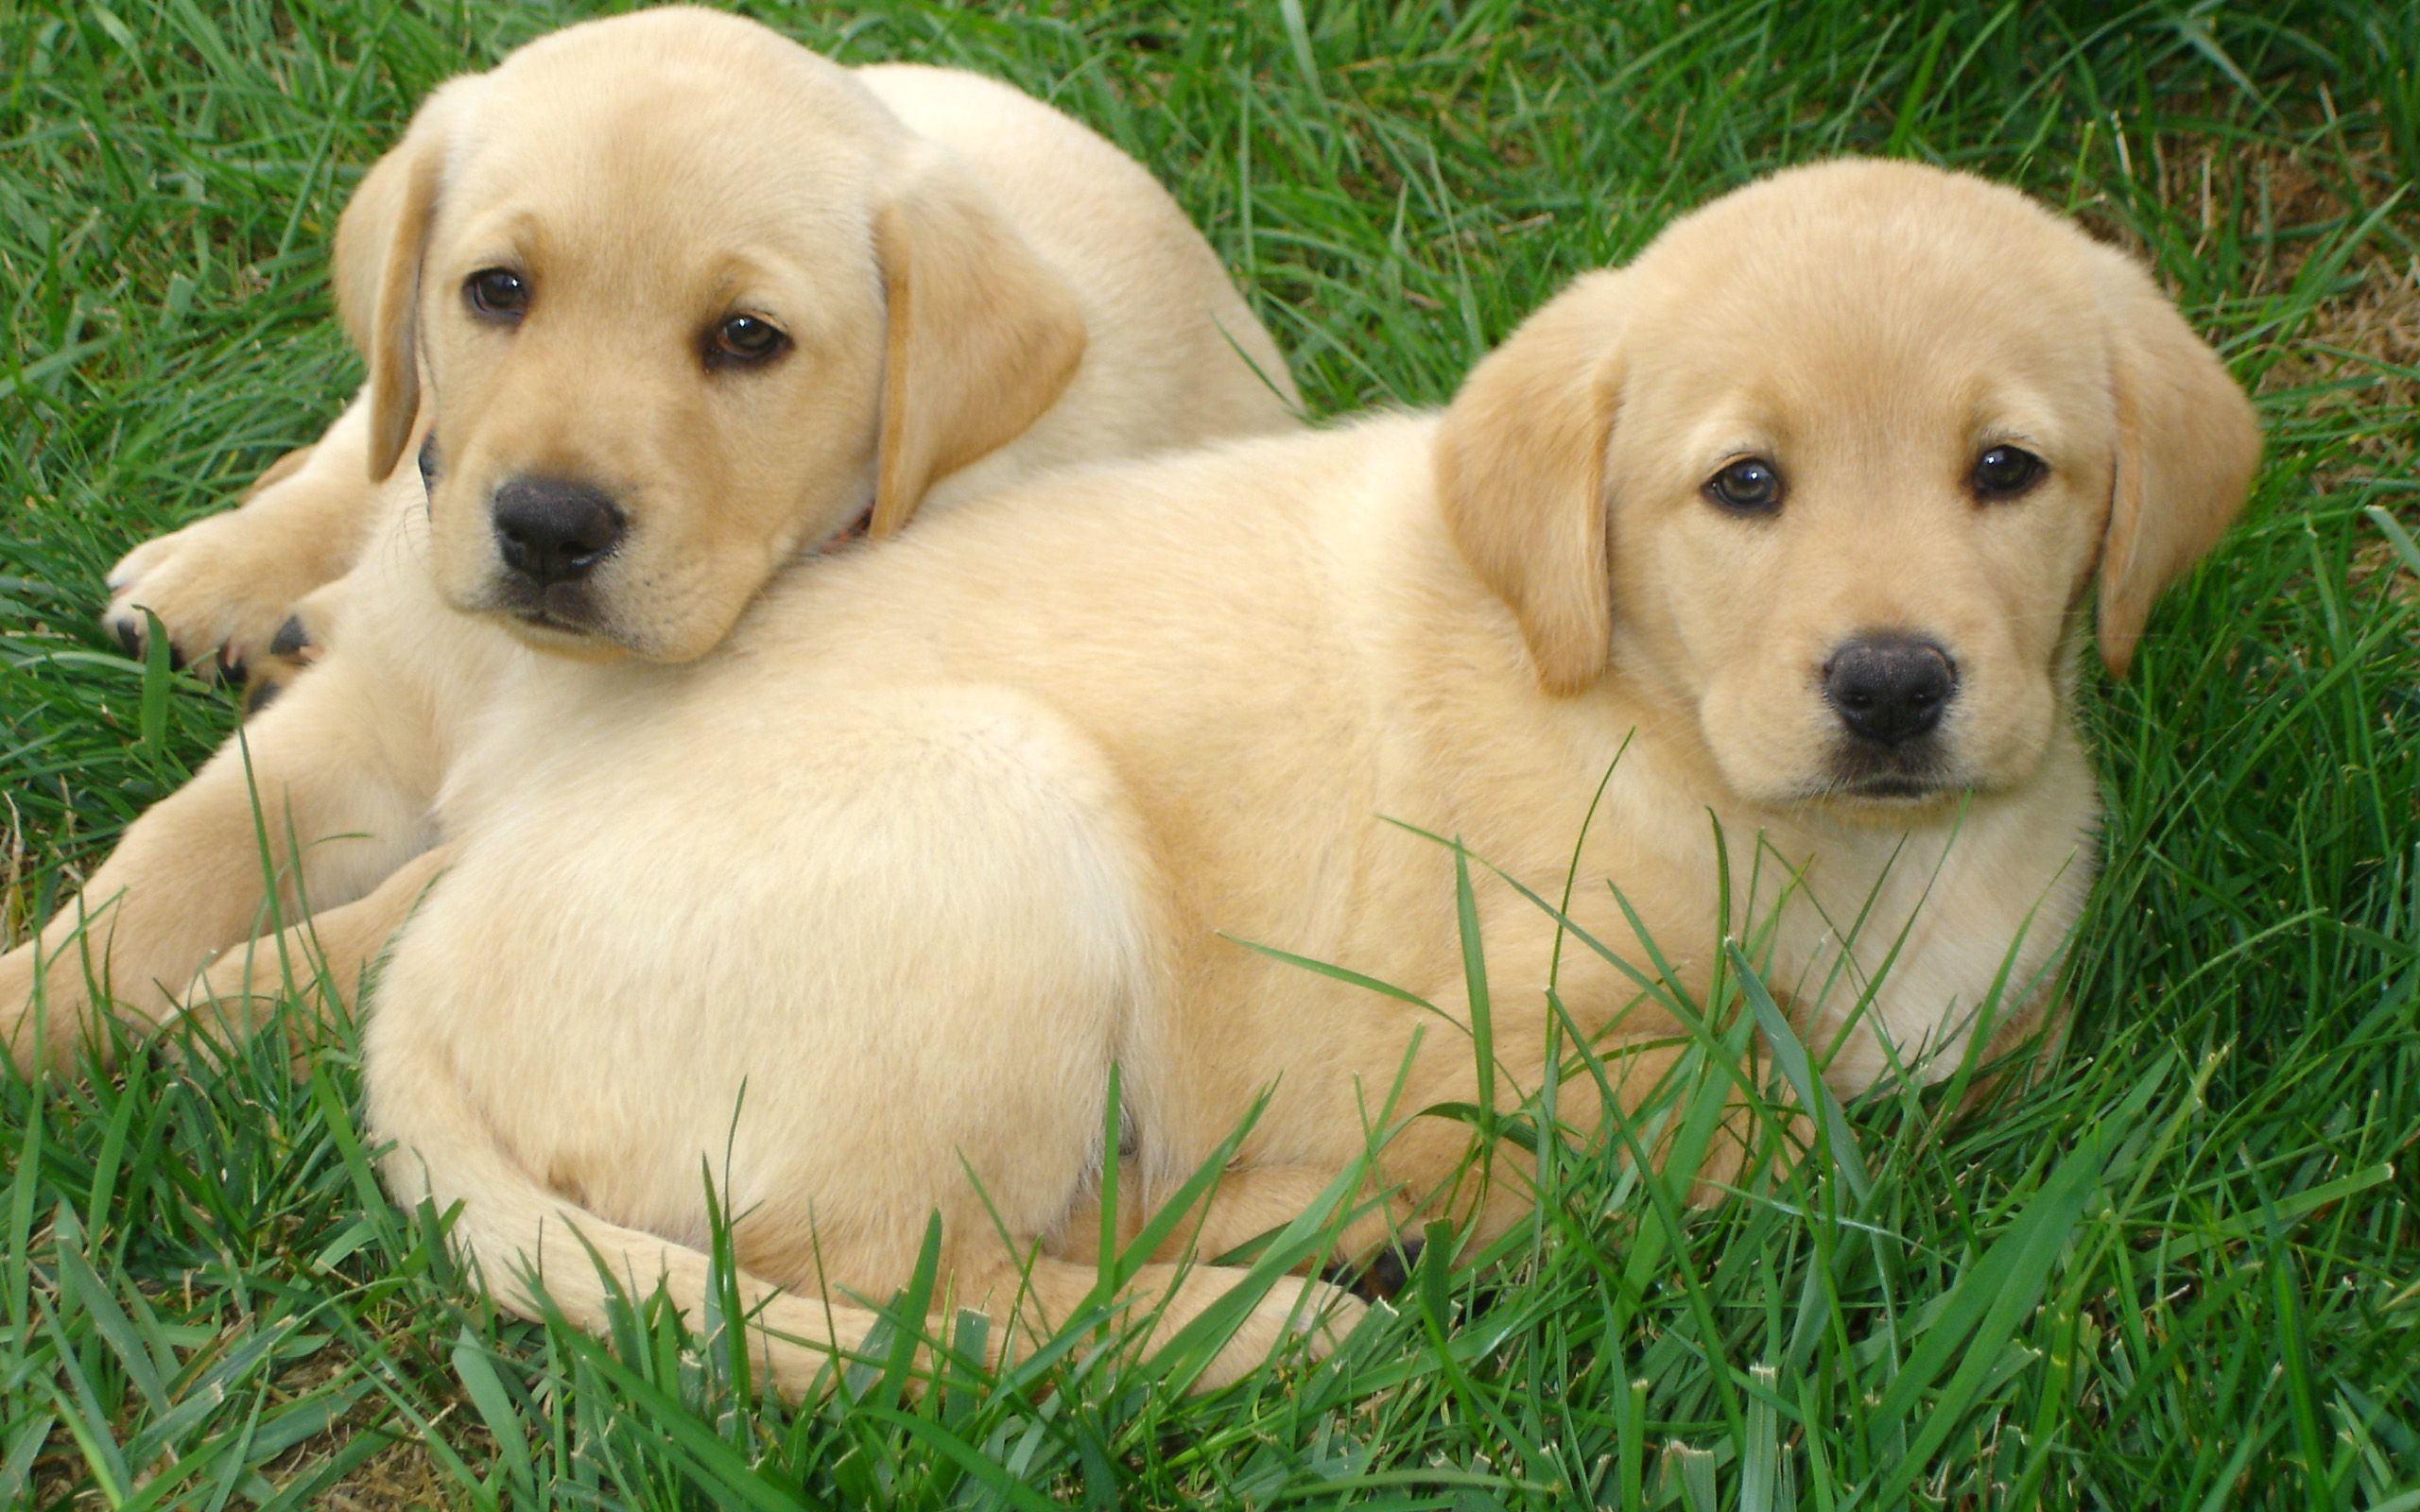 Labrador Retriever puppies Widescreen Wallpaper   12252 2560x1600